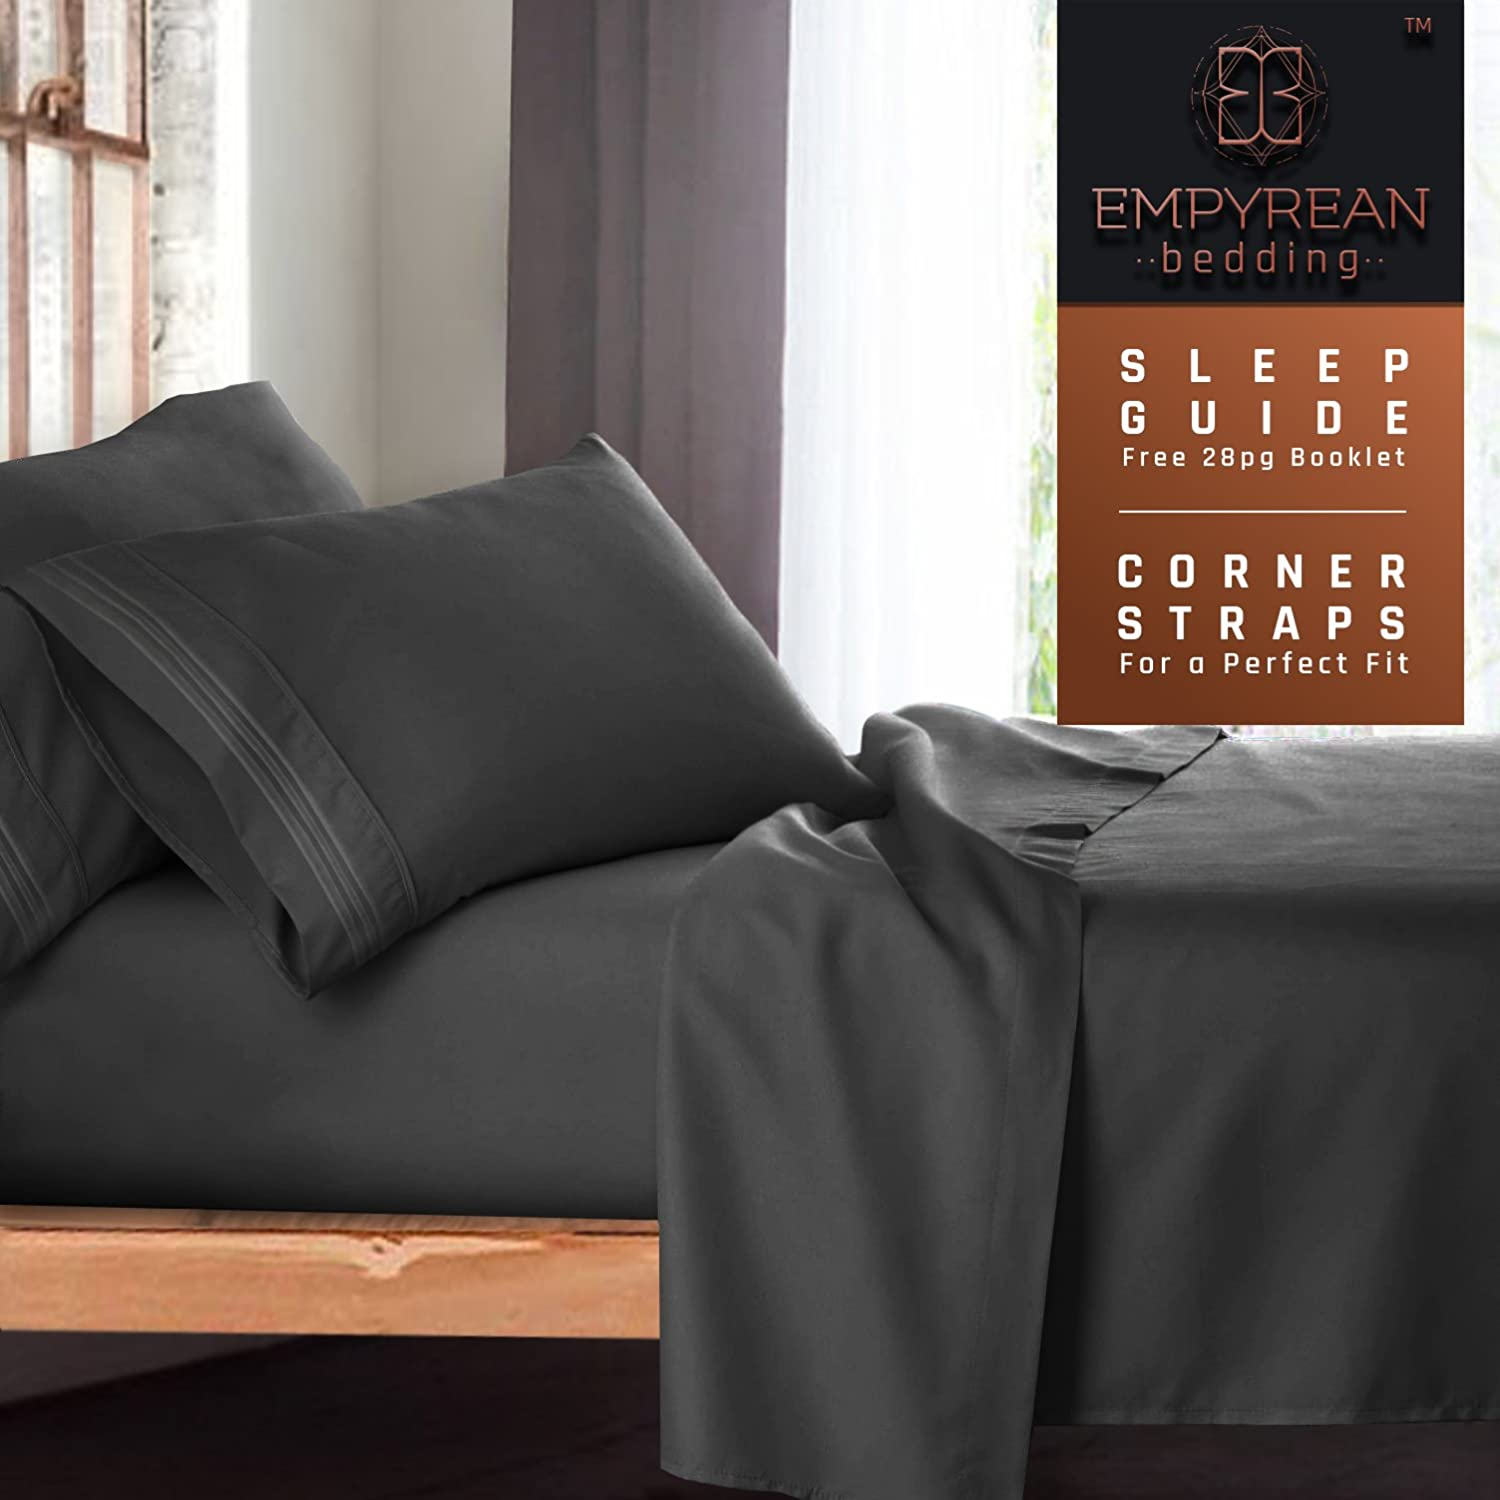 243d260f56b1 DelbouTree Charcoal Gray Turquoise Bedding Sets Sale – Ease Bedding ...